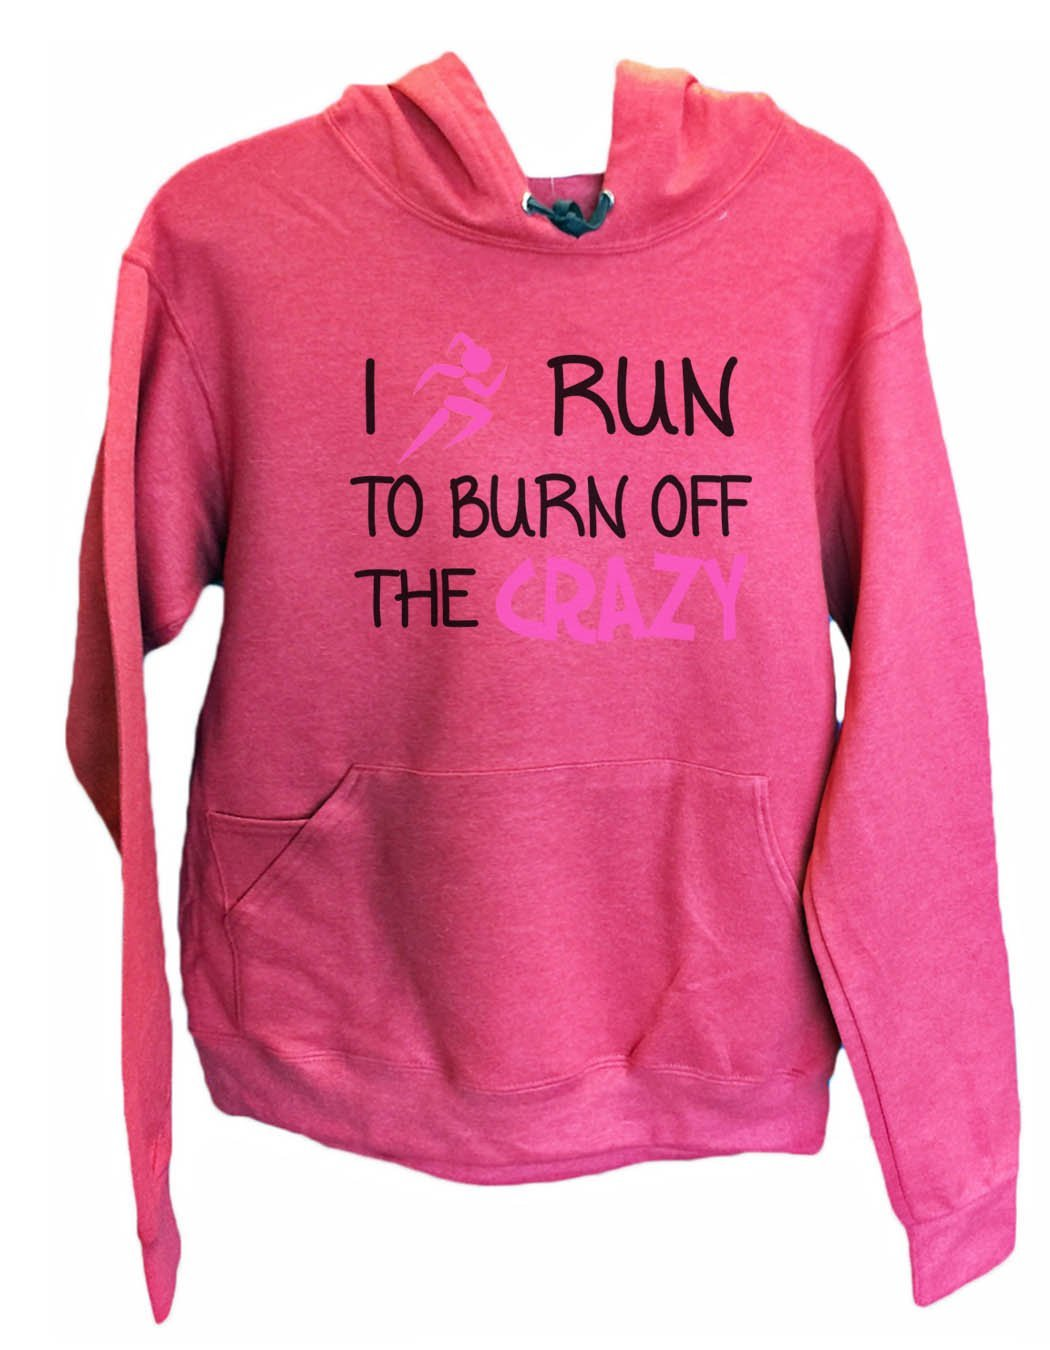 UNISEX HOODIE - I run to burn off the crazy - FUNNY MENS AND WOMENS HOODED SWEATSHIRTS - 532 Funny Shirt Small / Cranberry Red